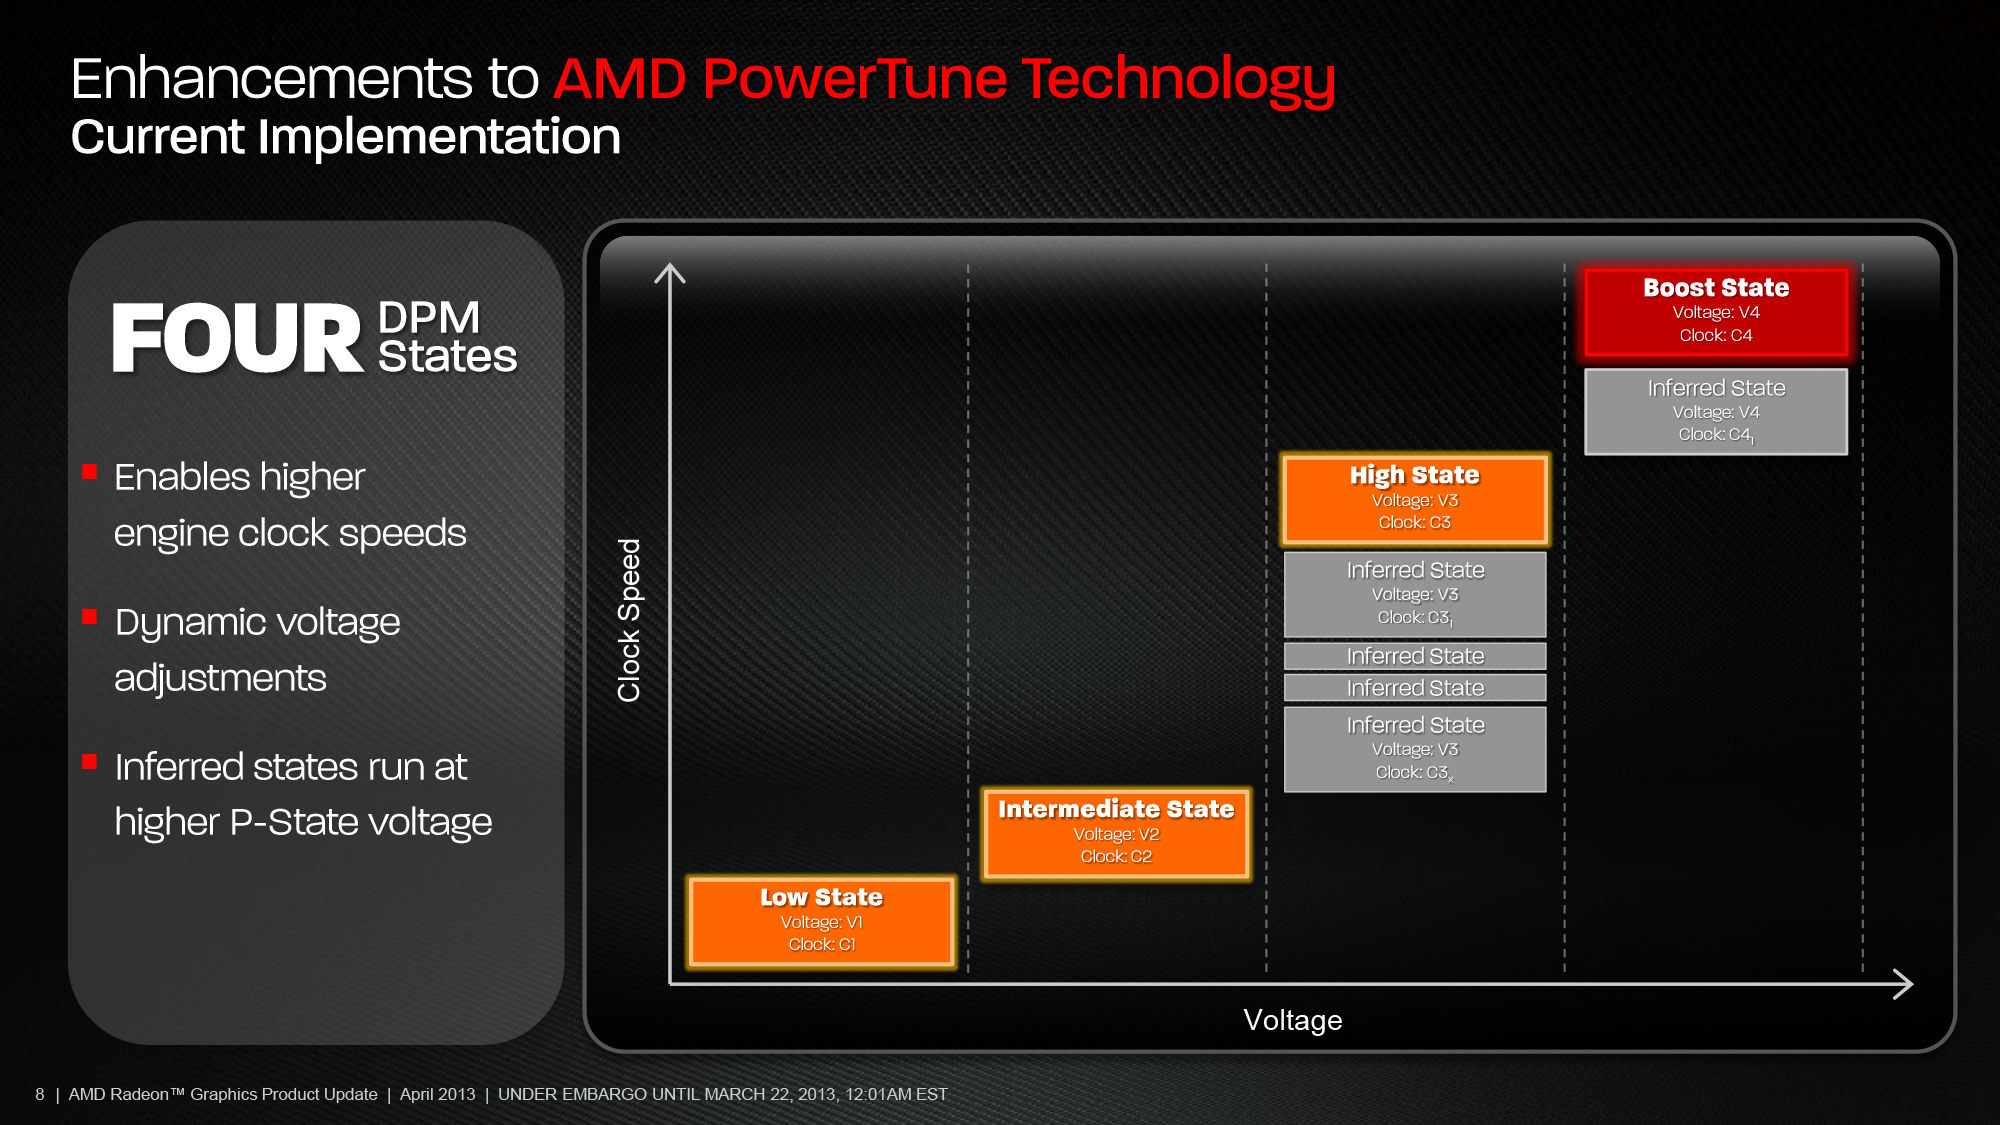 PowerTune: Improved Flexibility & Fan Speed Throttling - The